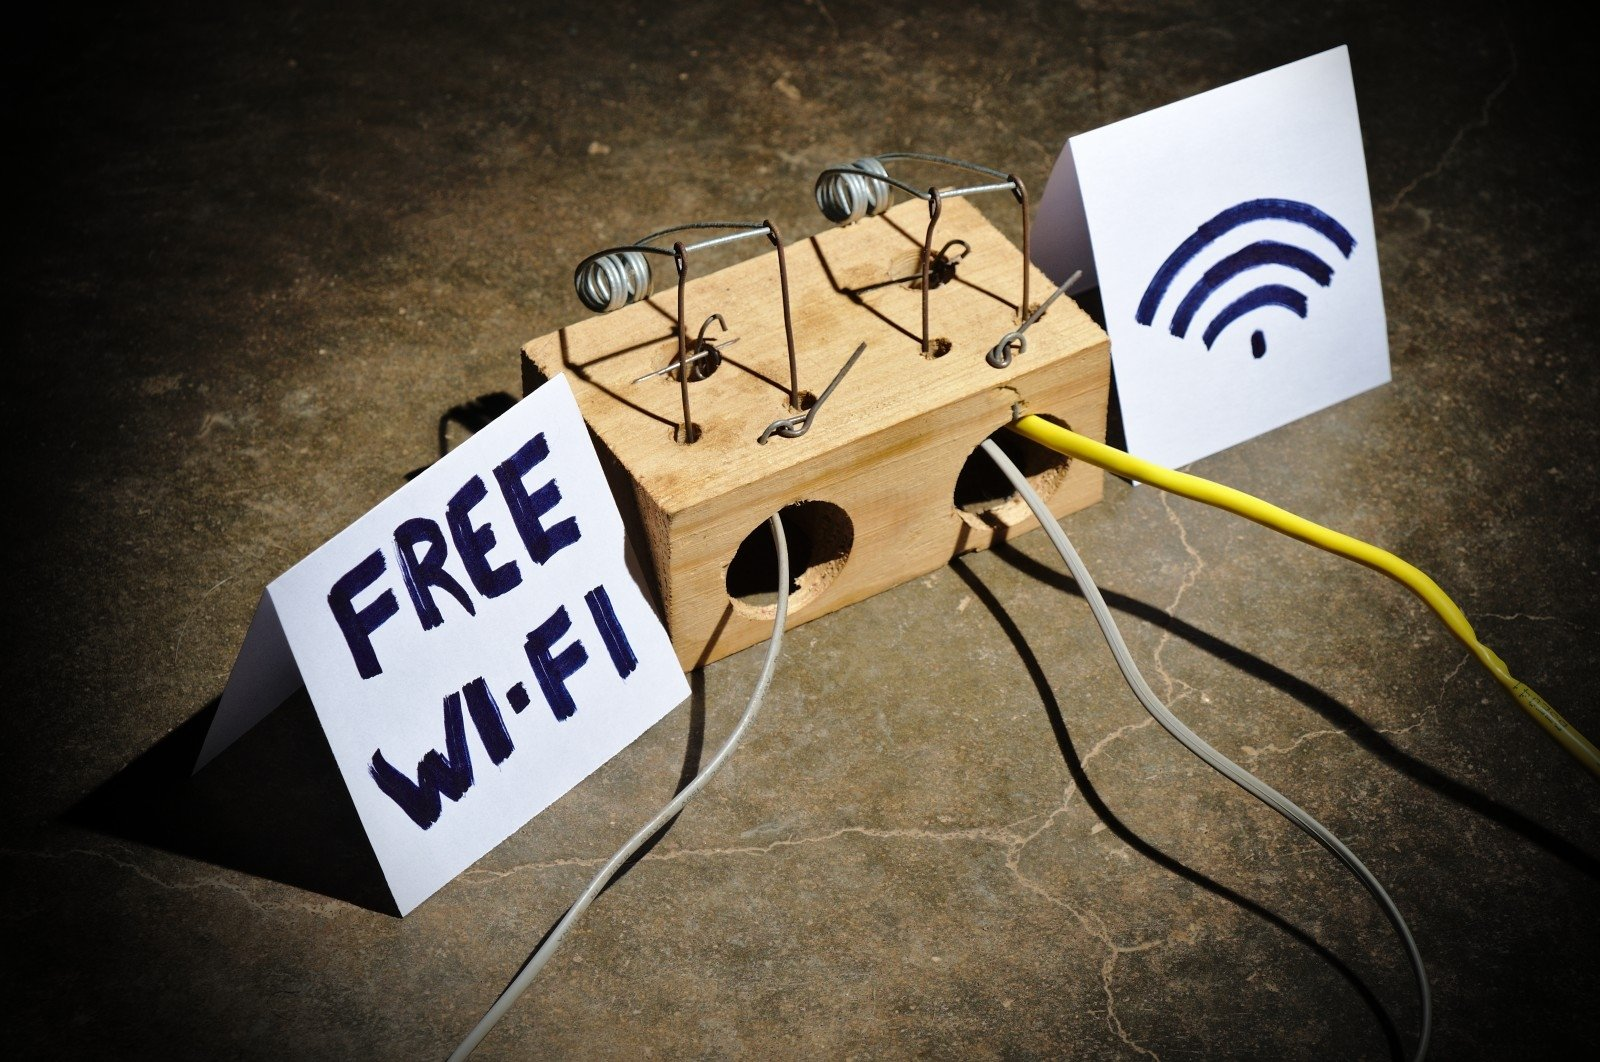 Residents are urged caution: free Internet may cost very dearly - EN